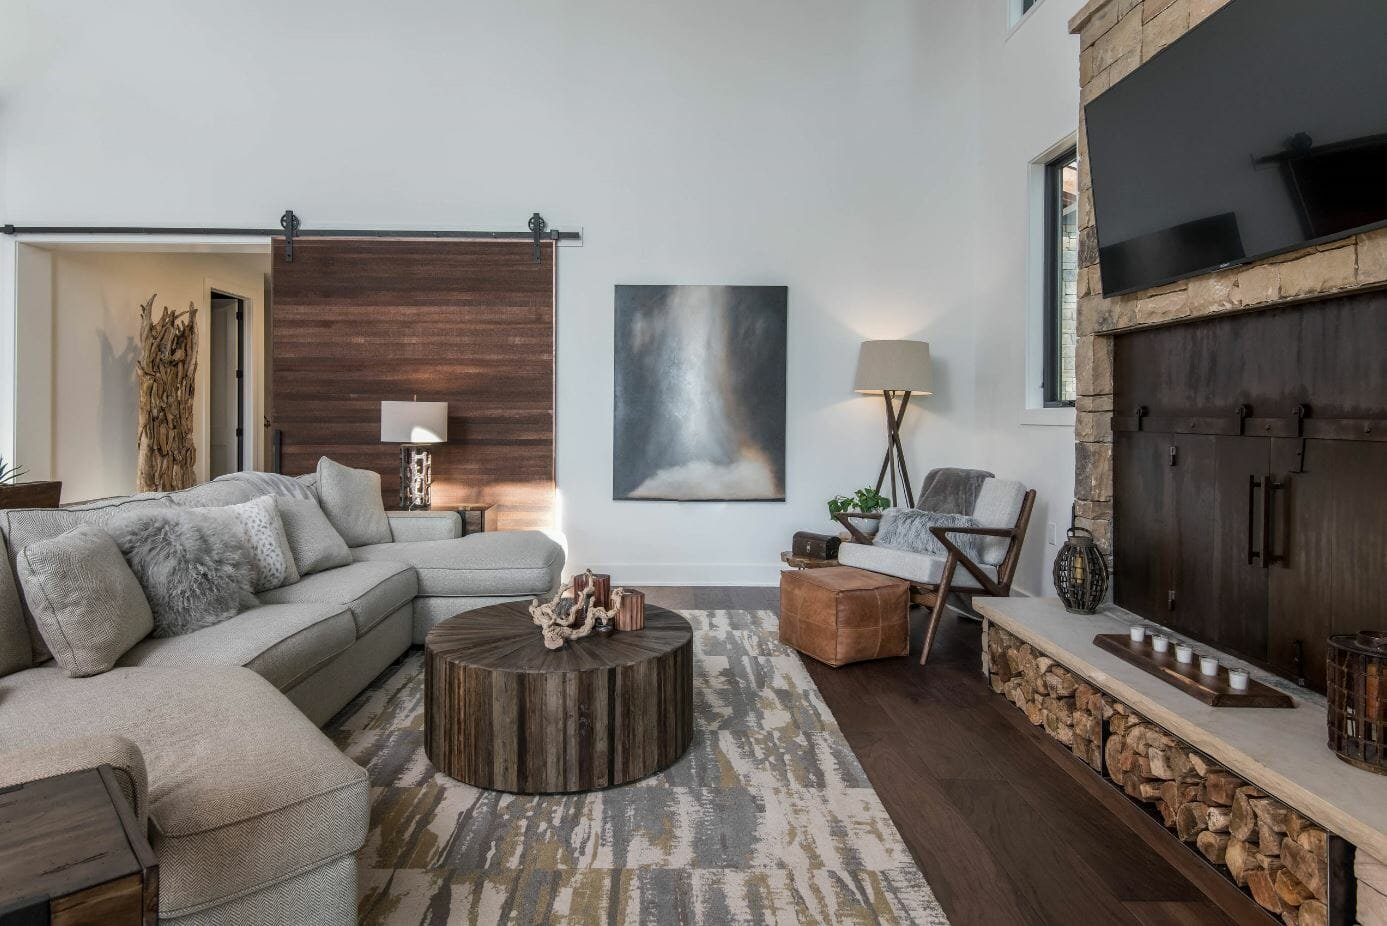 Modern Rustic Interior Design: 7 Best Tips To Create Your Flawless